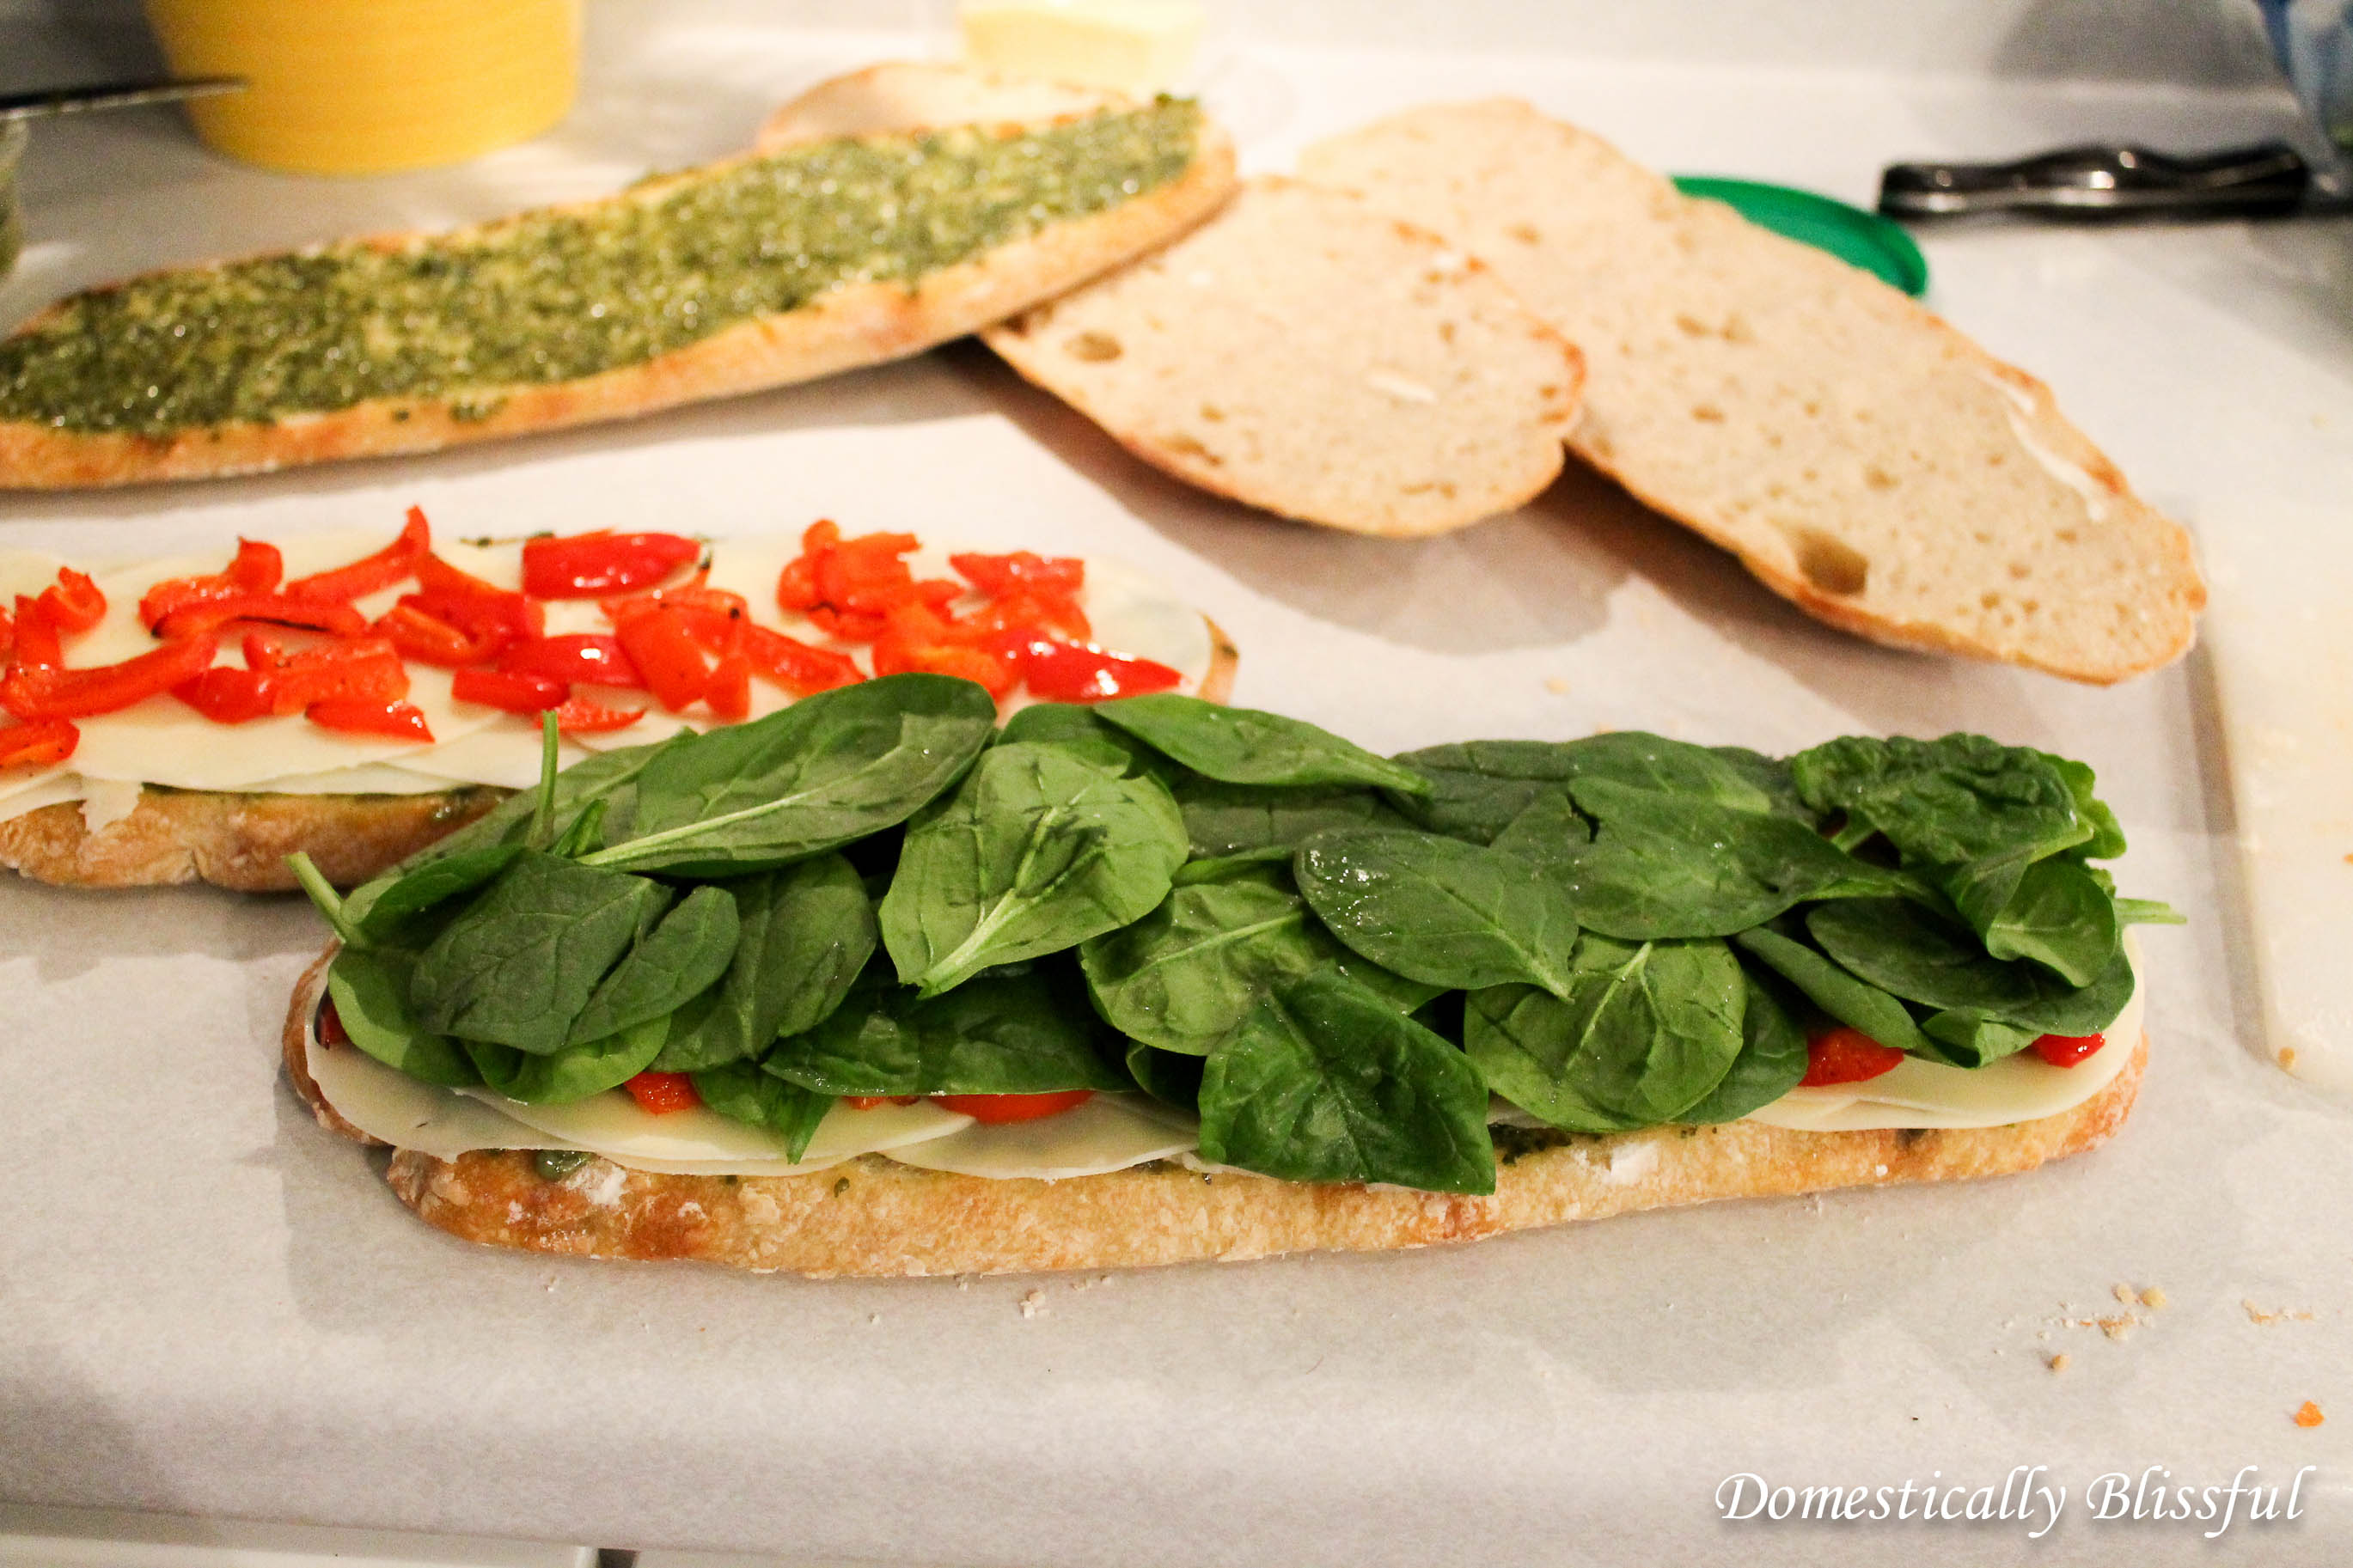 Spinach on an Italian Pressed Sandwich